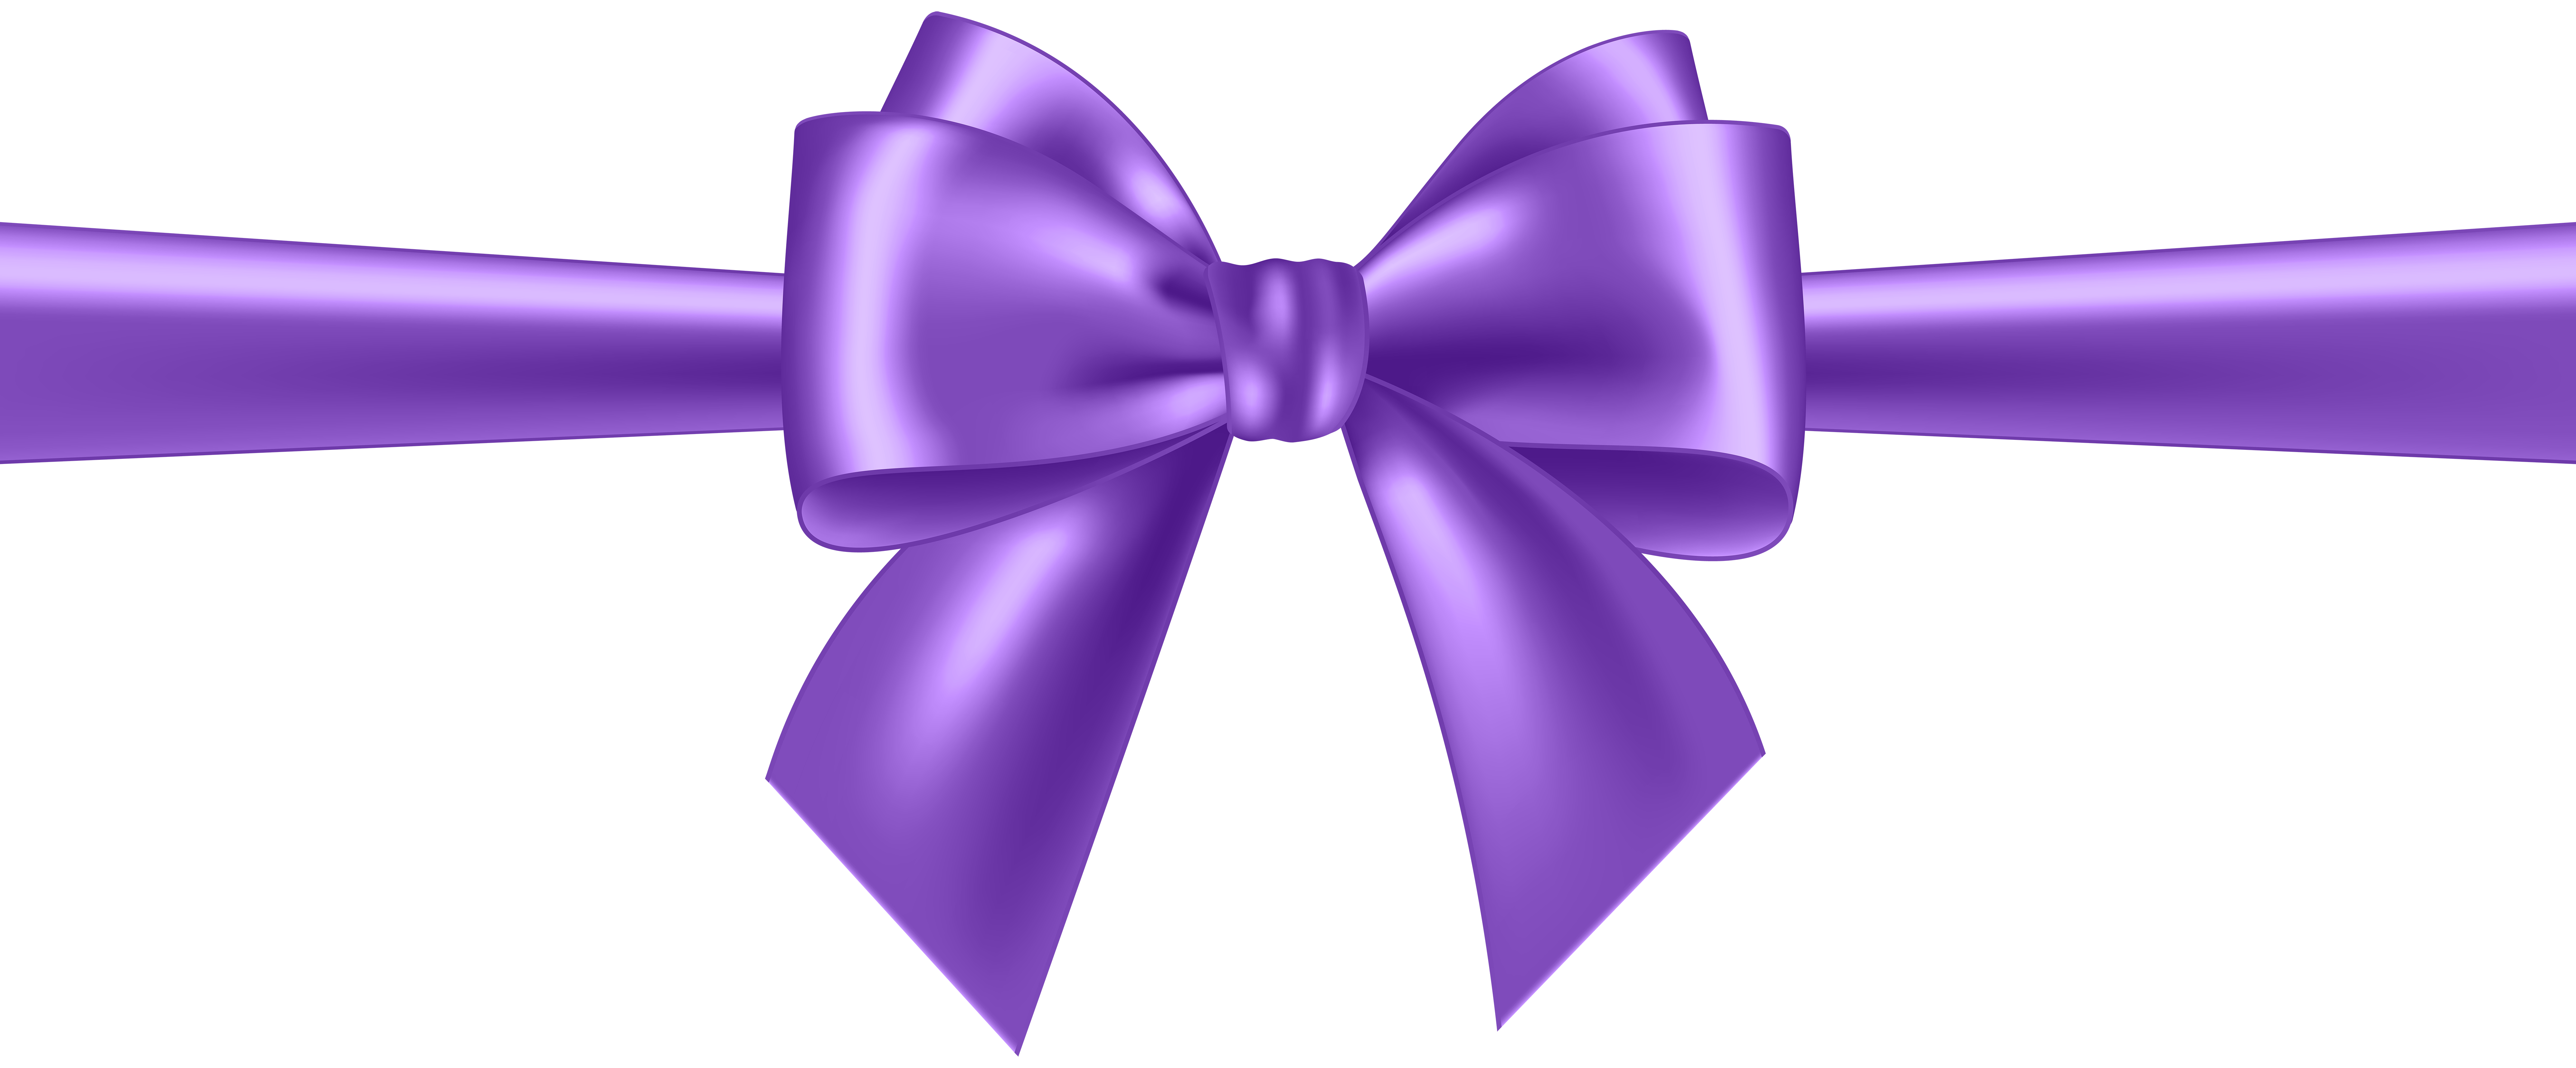 Star bow clipart image library library Purple Bow Transparent Clip Art | Gallery Yopriceville - High ... image library library